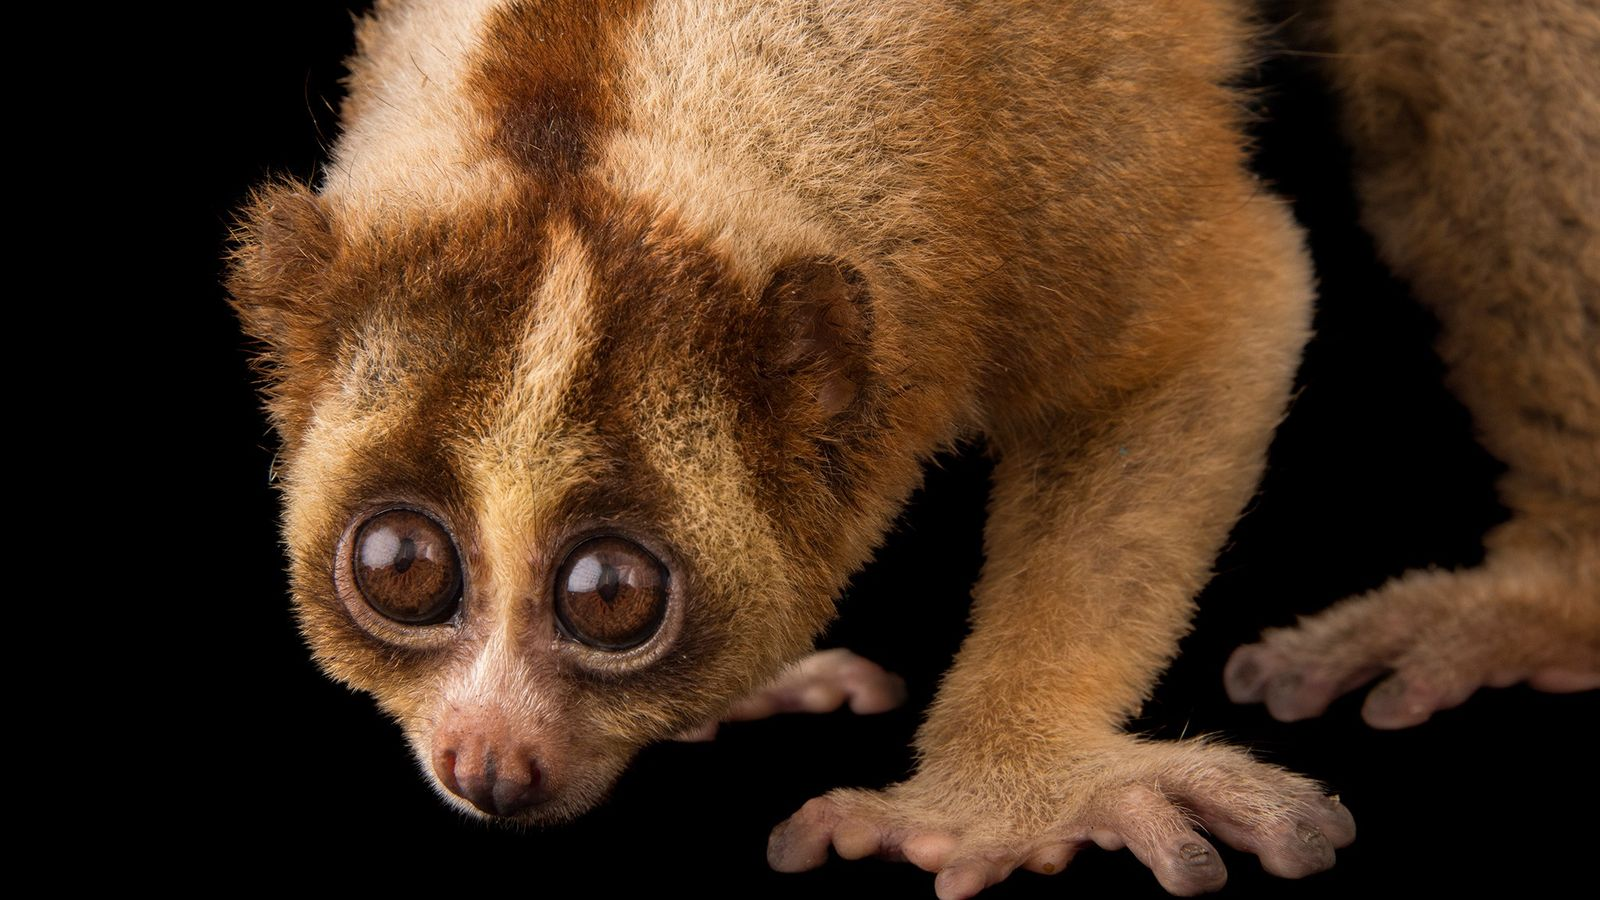 The Javan slow loris's face markings draw attention to its most dangerous part—the mouth.